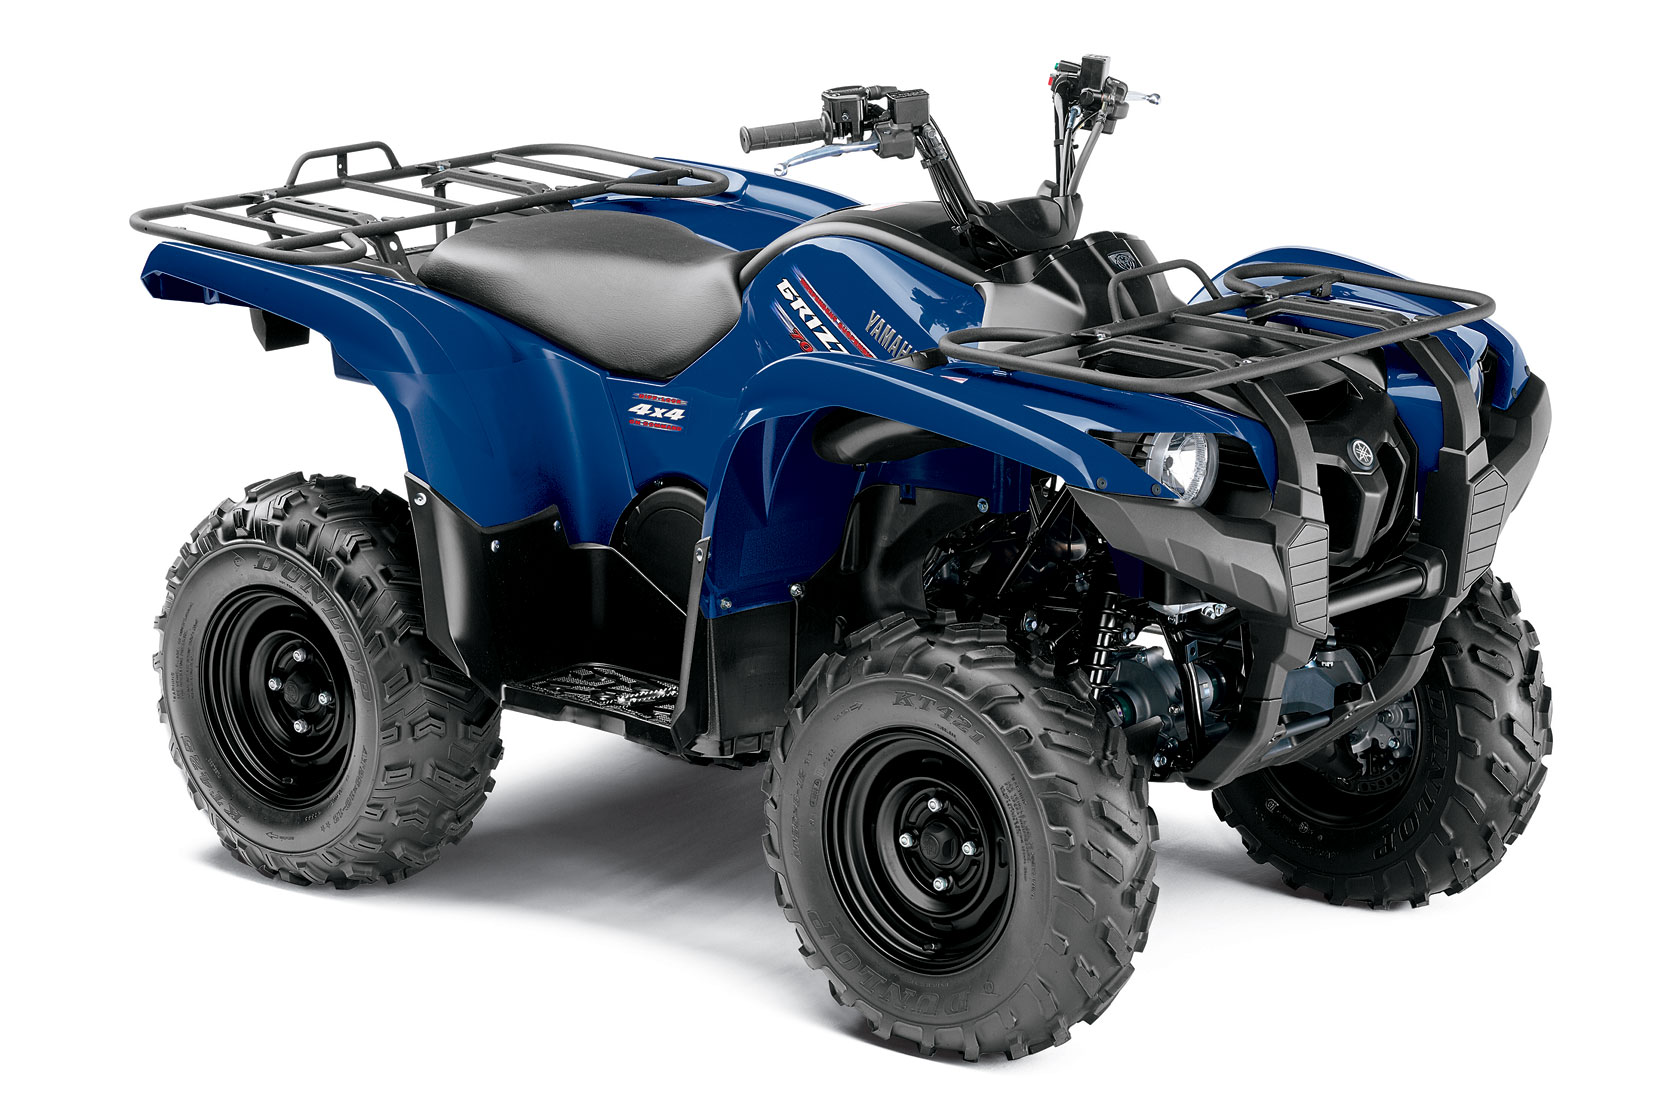 2015 yamaha grizzly 450 review autos post for 2017 yamaha grizzly review